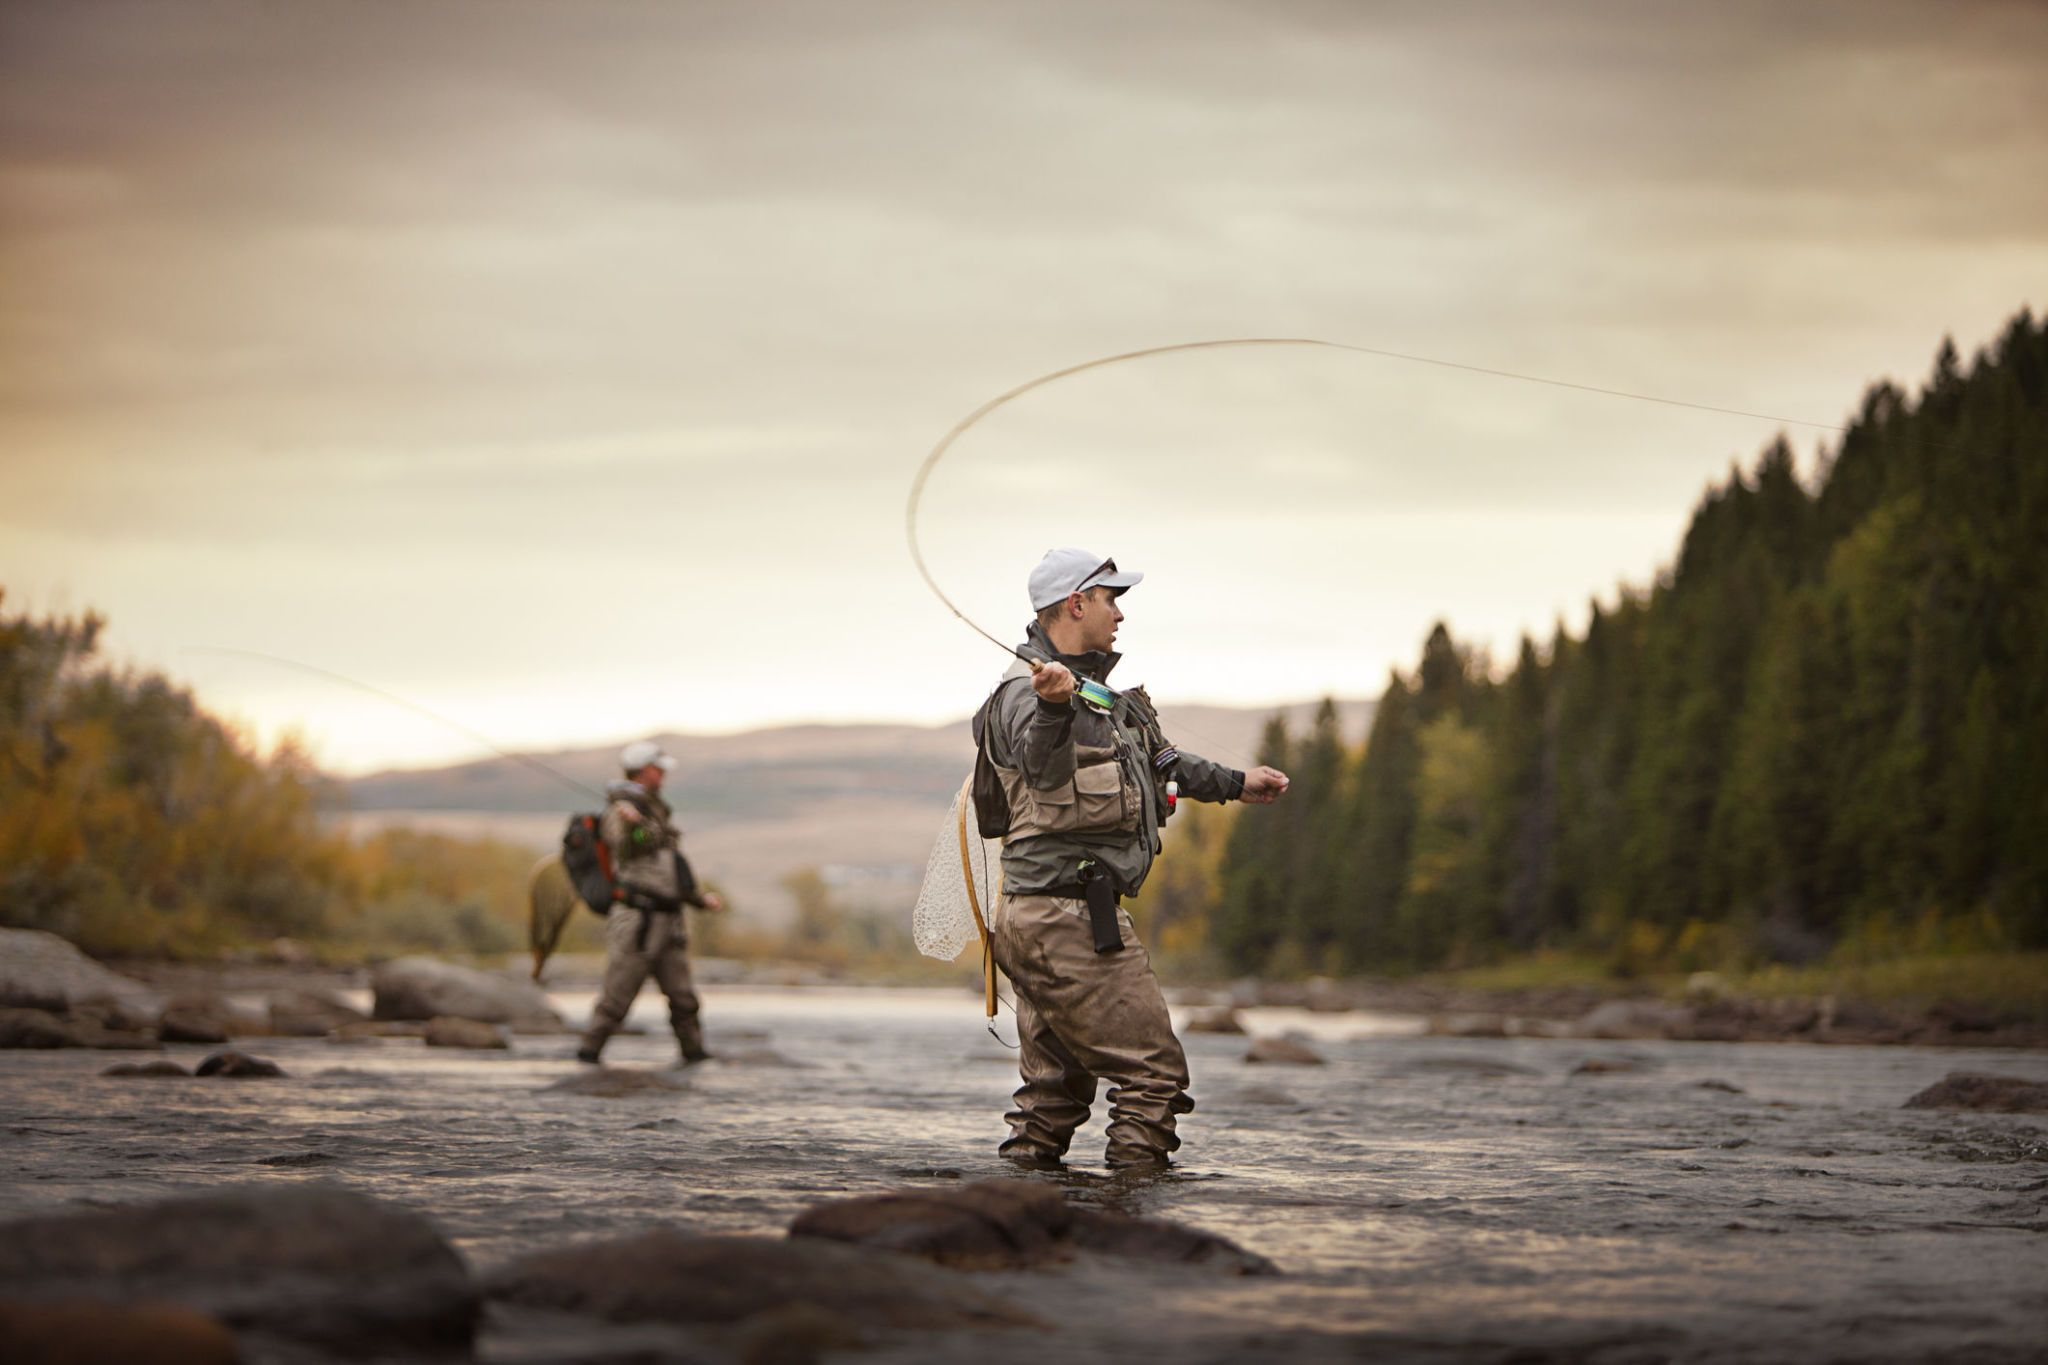 Fly Fishing: Why Tie?